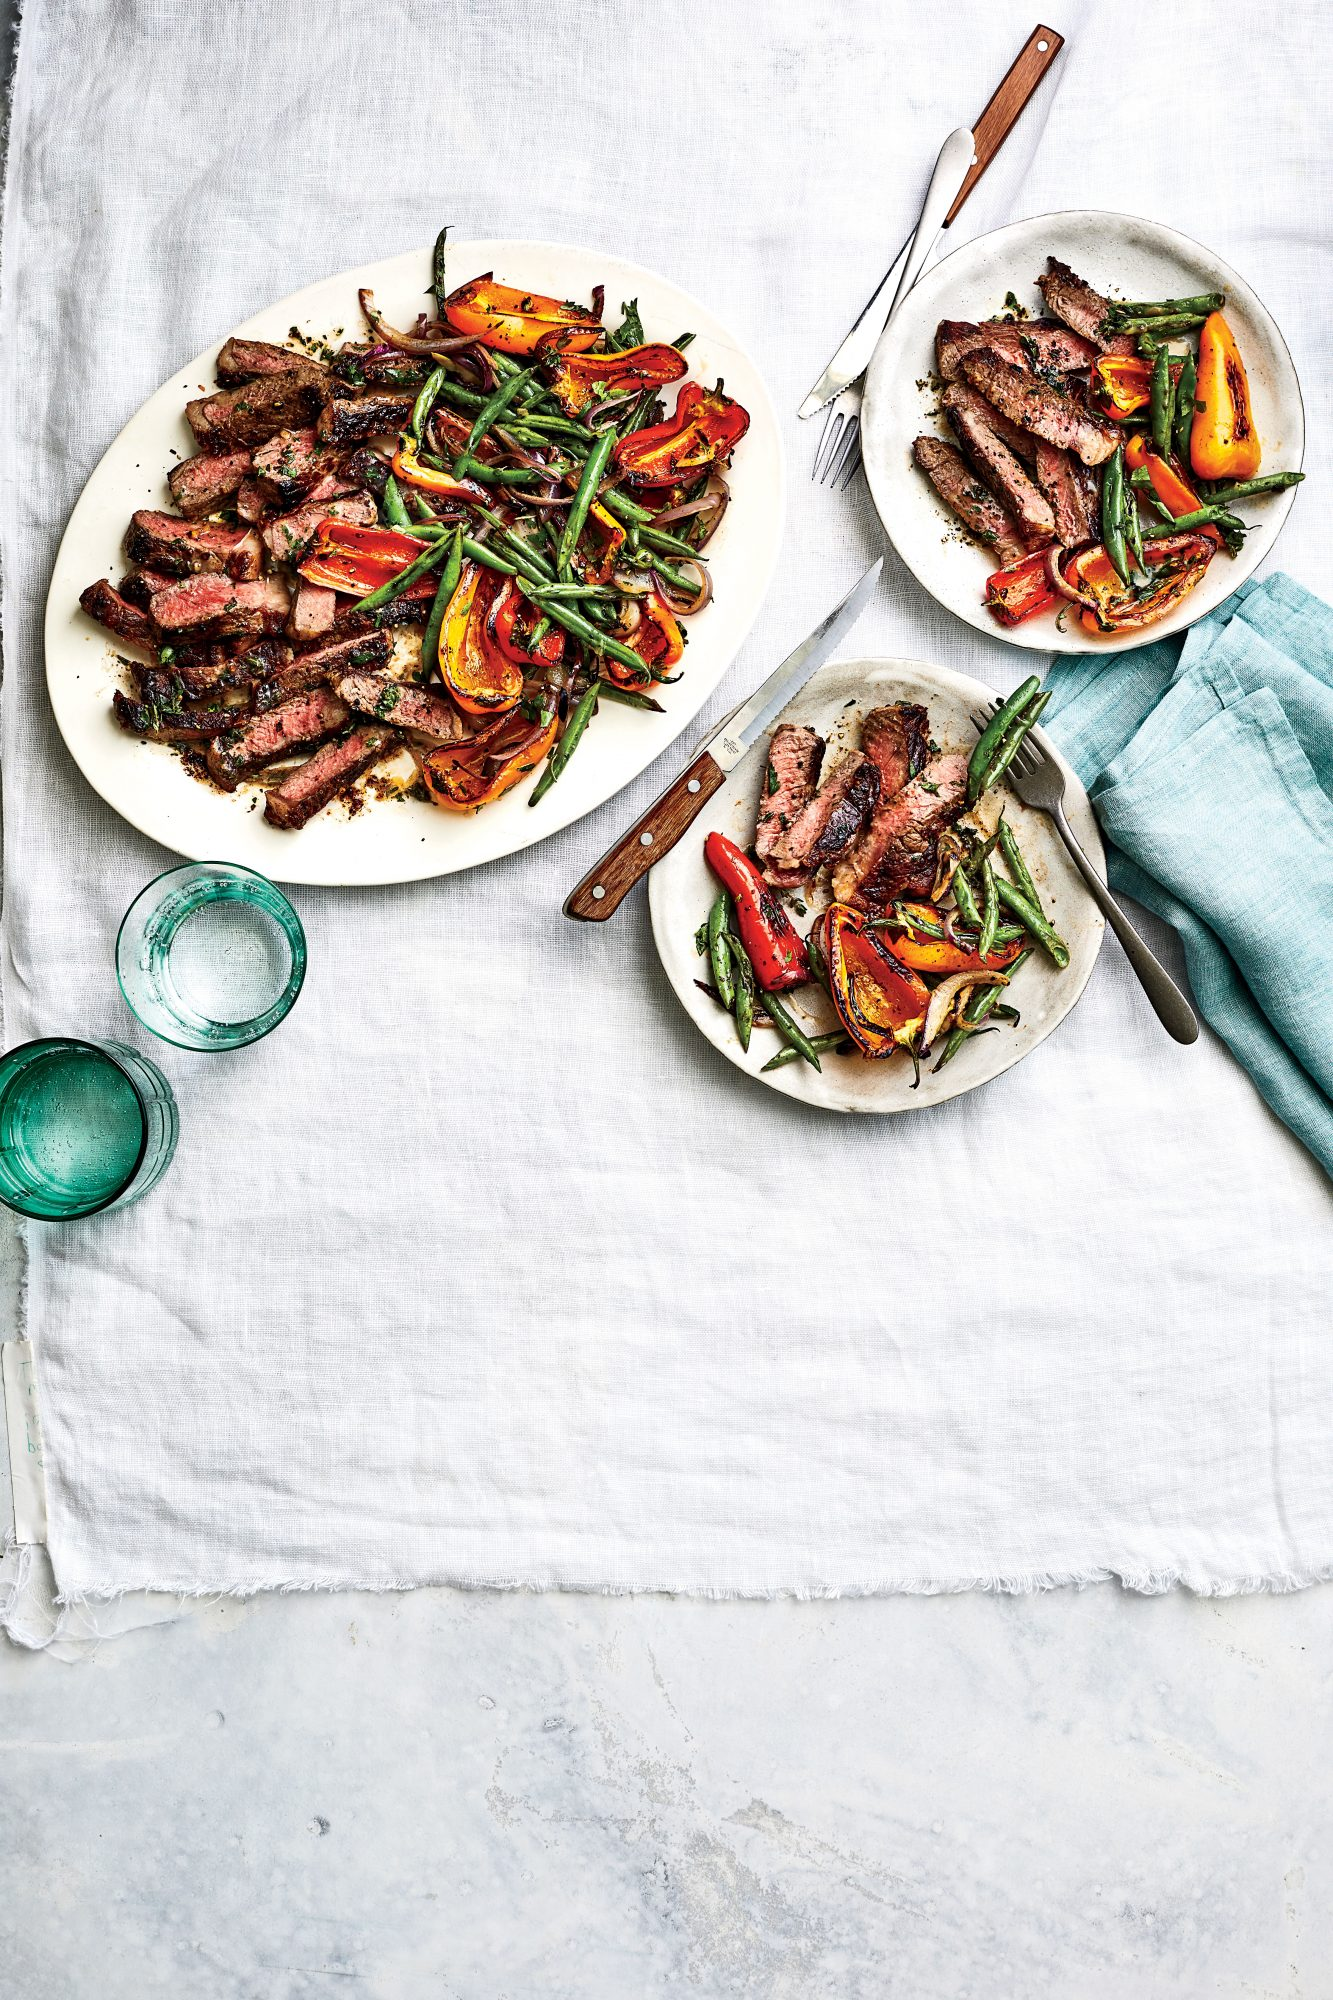 Grilled Steak with Blistered Beans and Peppers Recipe